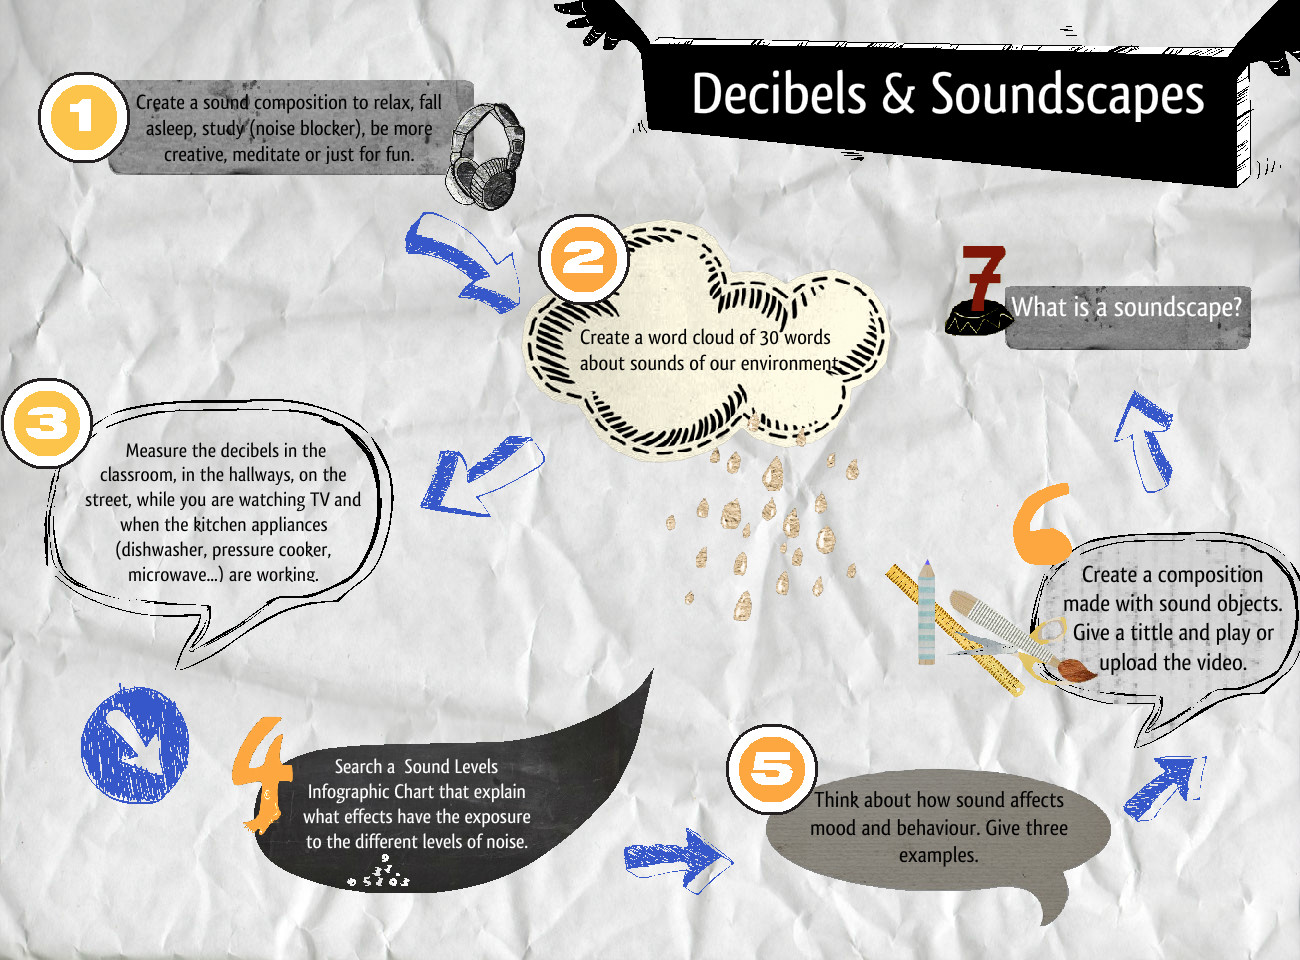 Decibels & Soundscapes